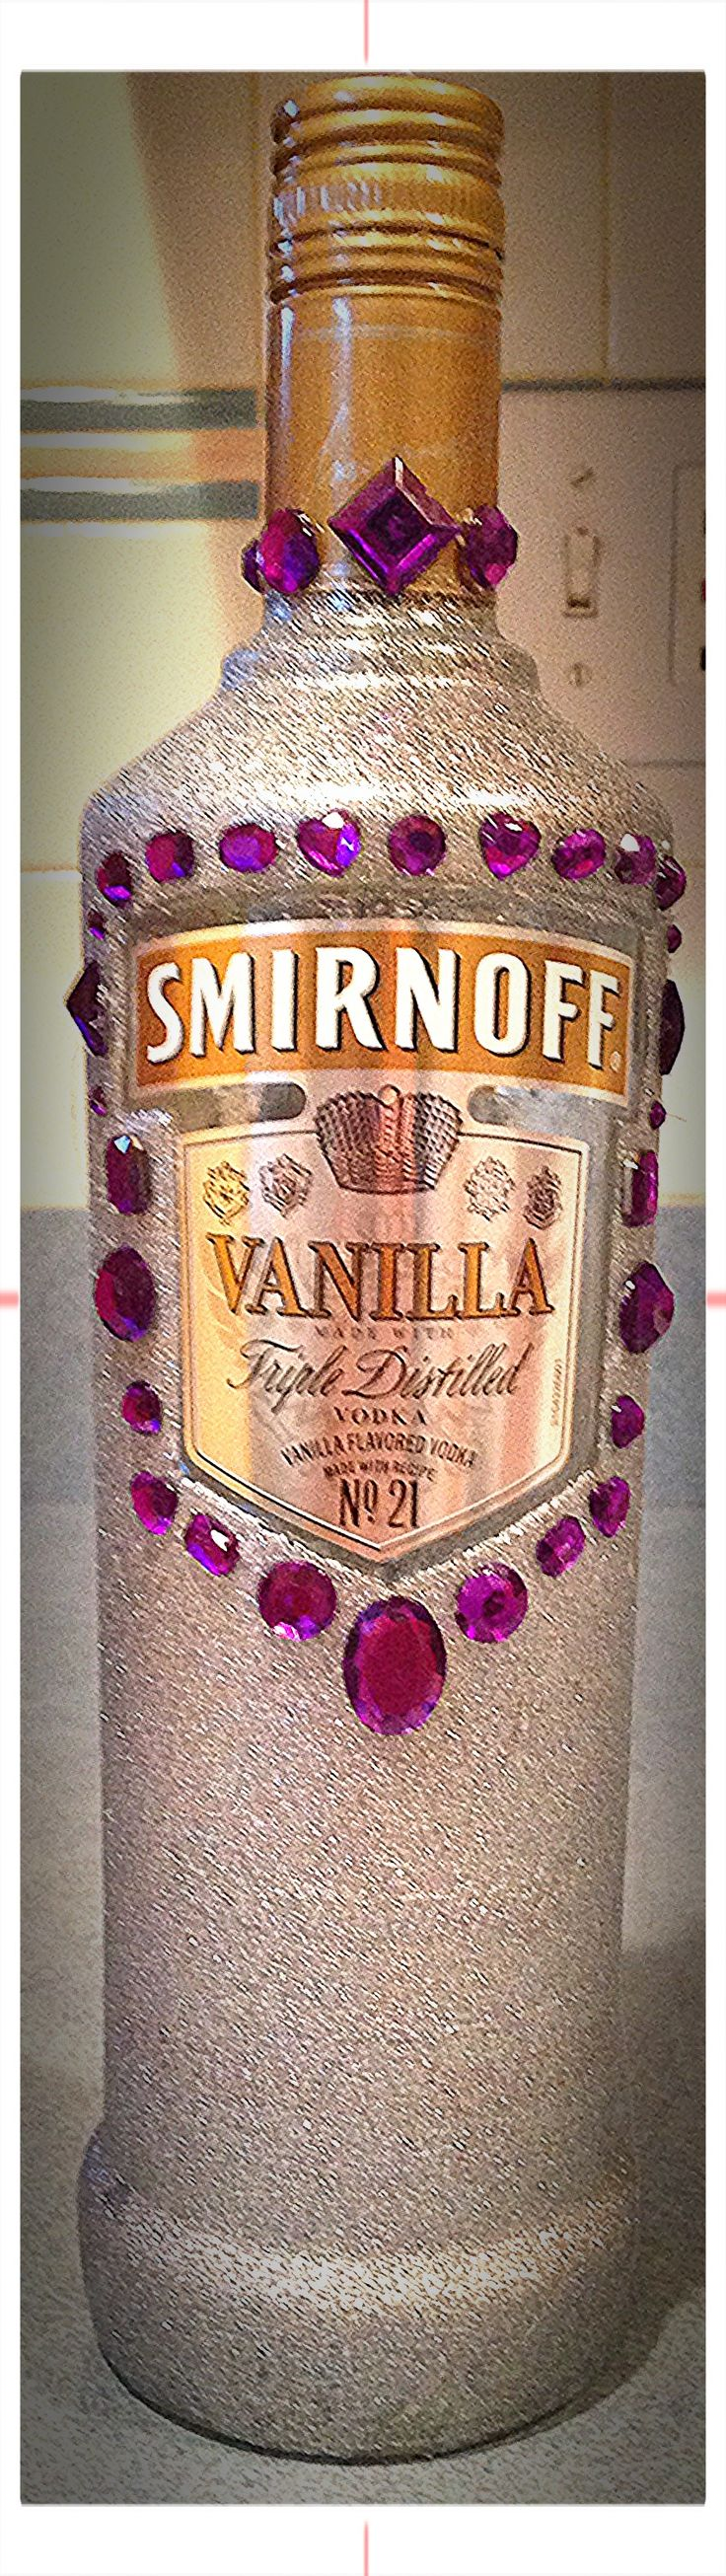 Rhinestone jewels for crafts - Best 25 Bedazzled Bottle Ideas Only On Pinterest 21st Gifts 21st Presents And 21 Birthday Gifts